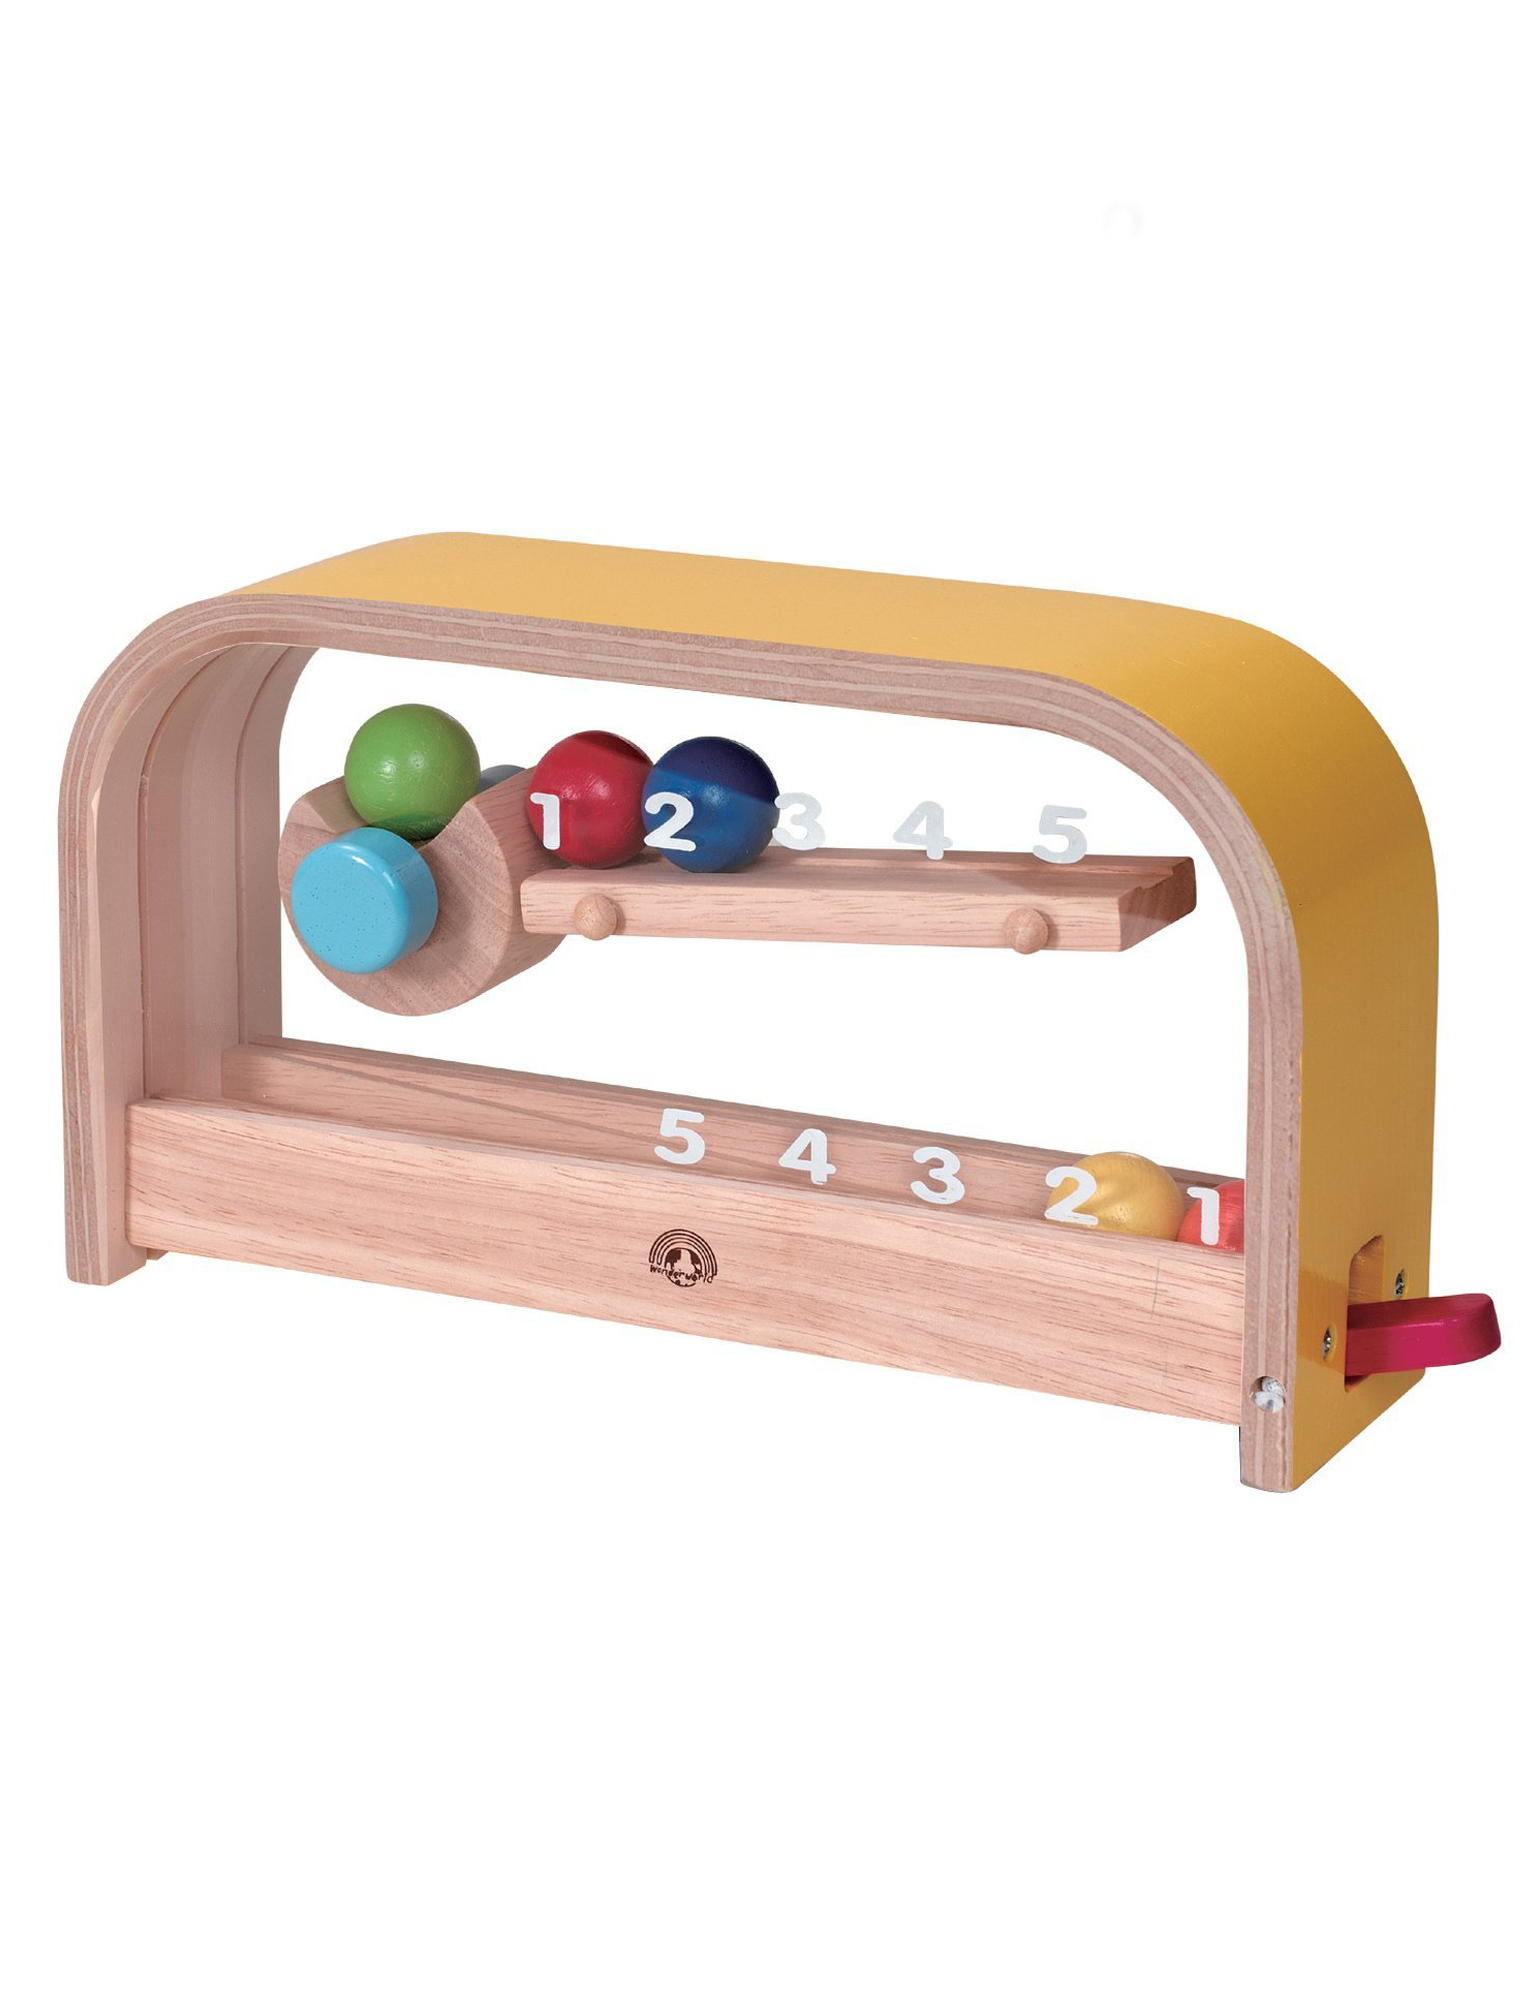 Wooden Counting Ball